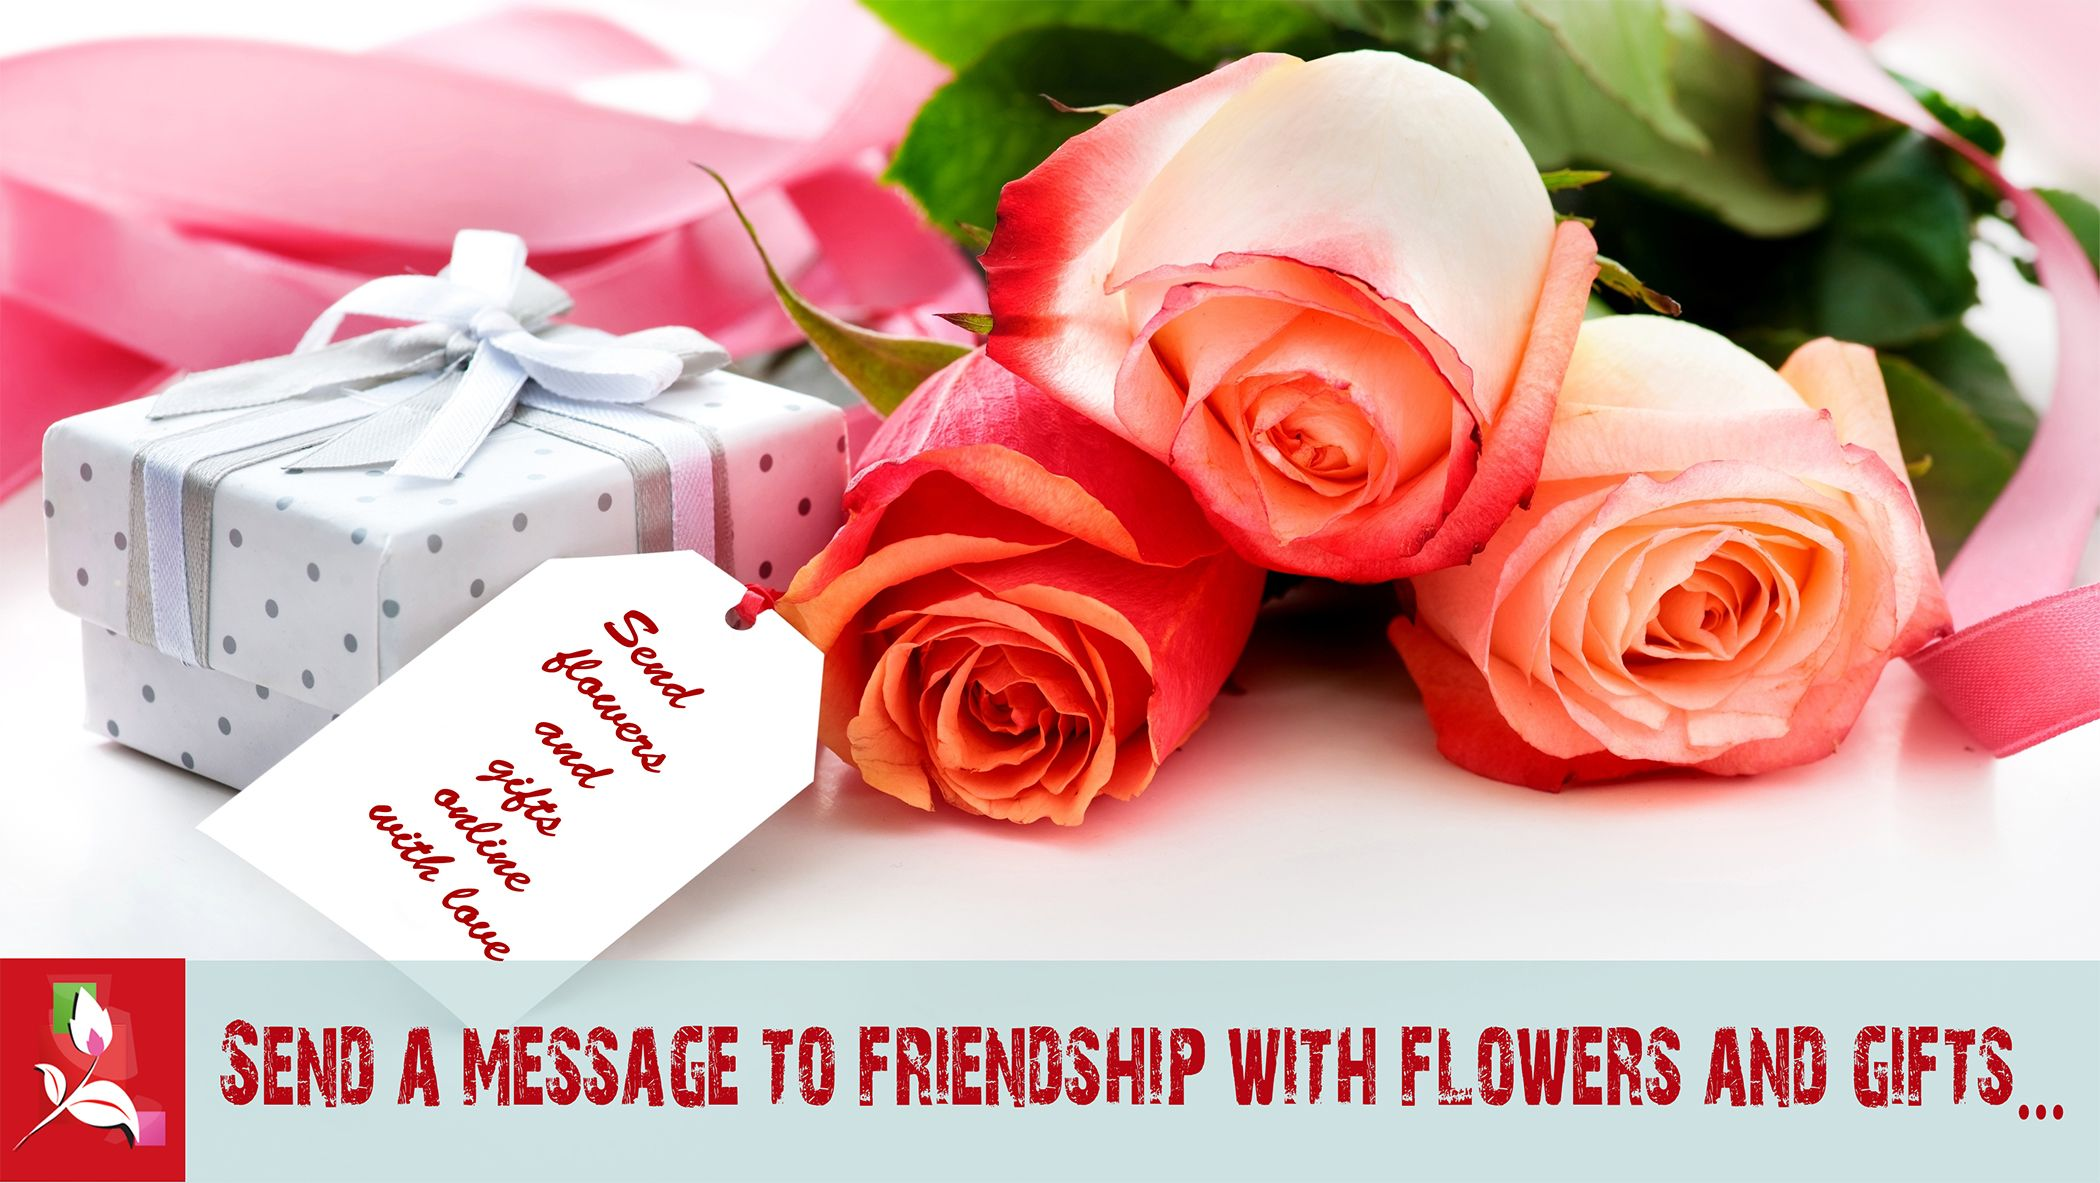 Send flowers and gifts online with love share your love online with send flowers and gifts online with love share your love online with beautiful flowers and gifts having so many religions across many parts of india izmirmasajfo